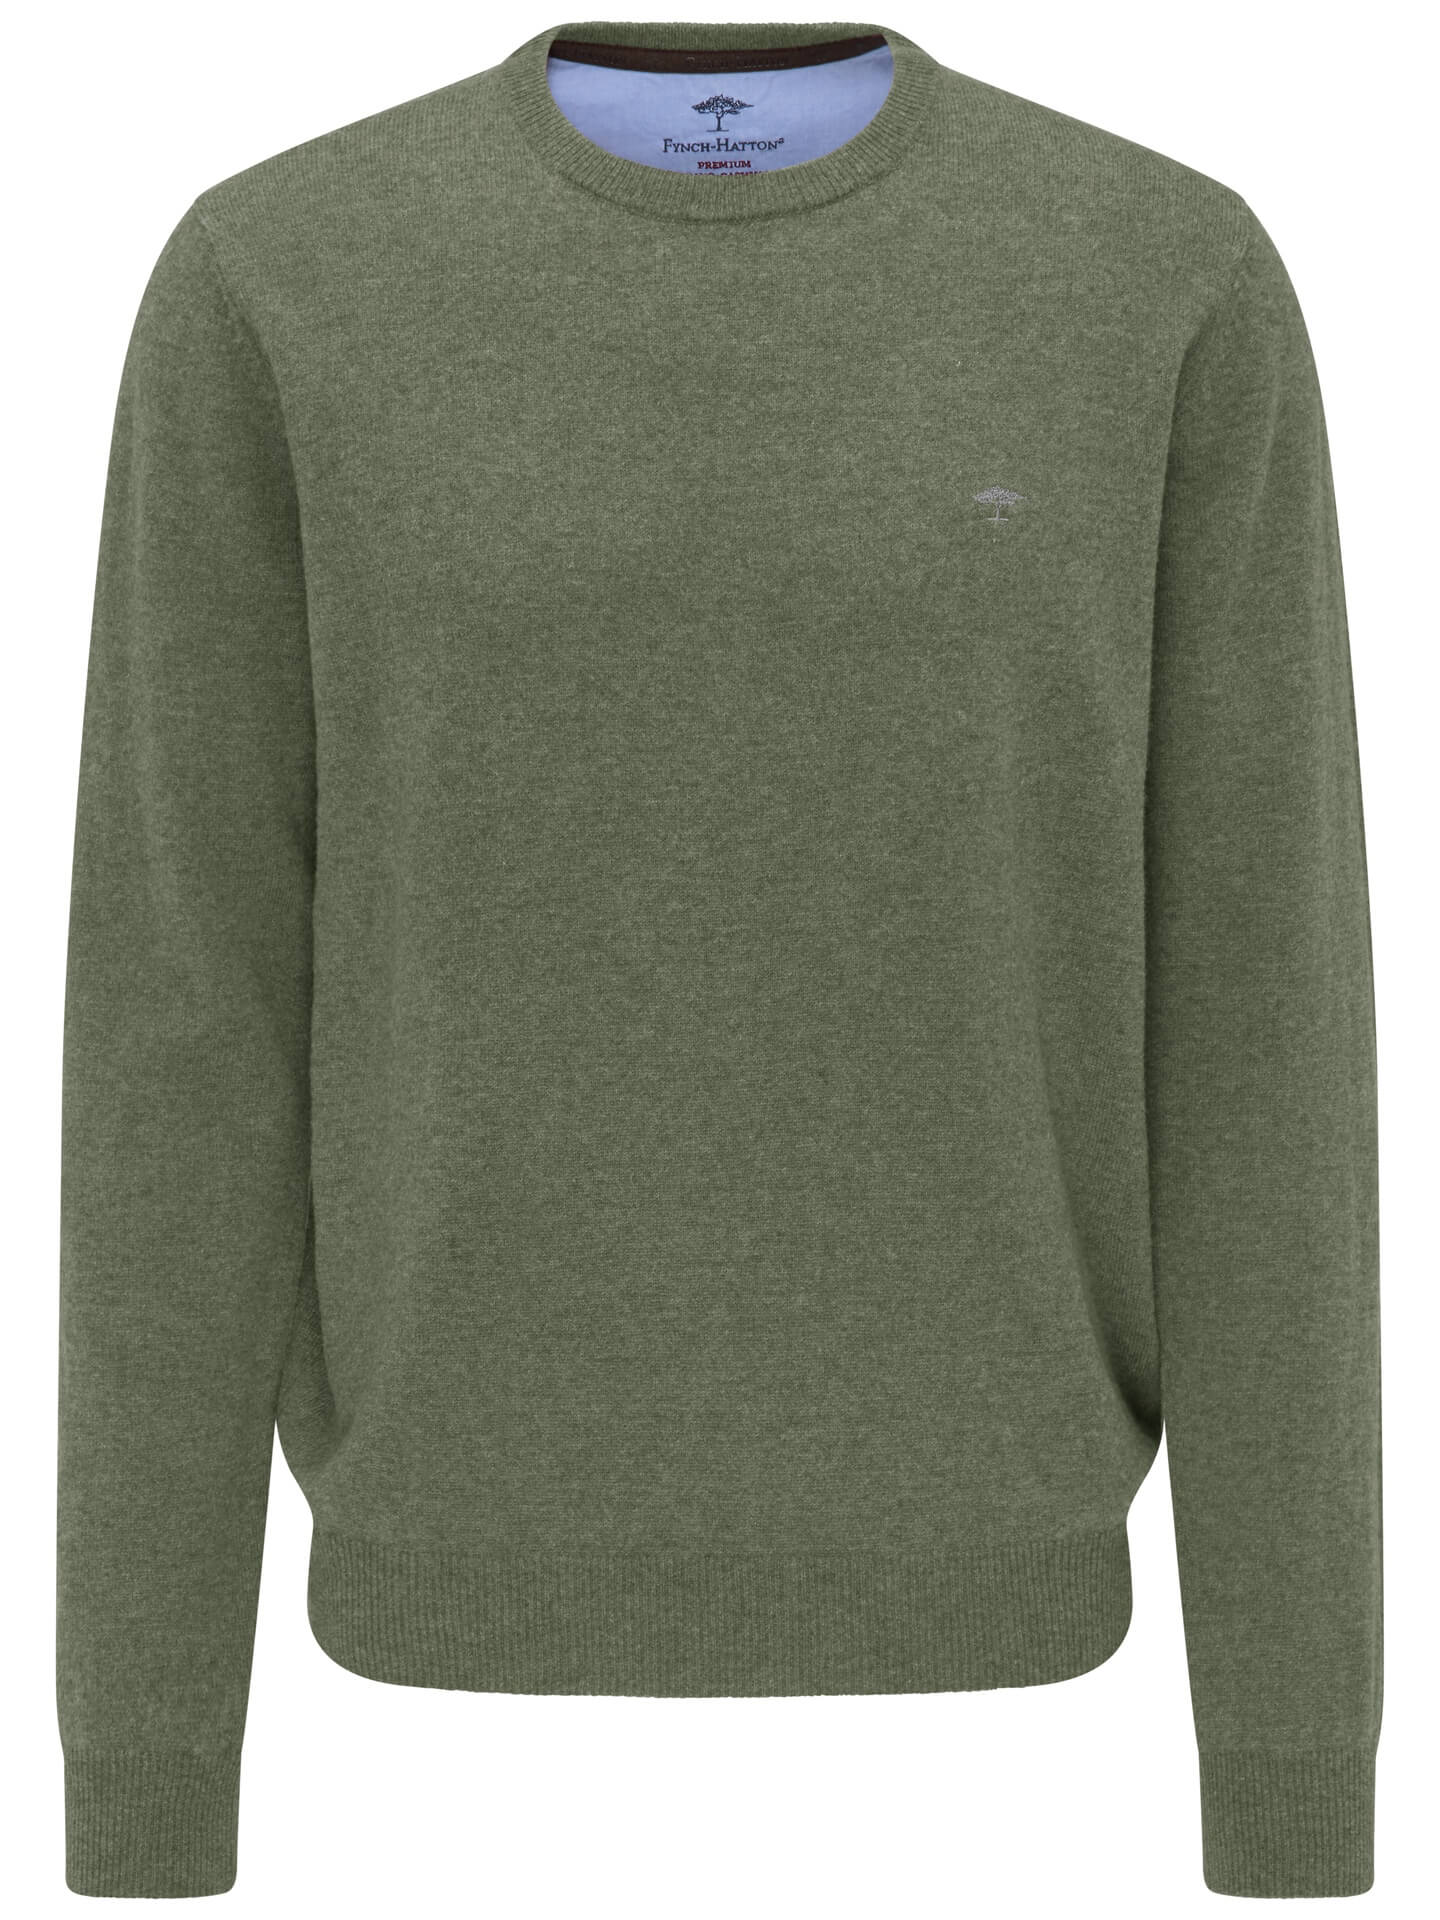 Fynch Hatton Merino/Cashmere O Neck Jumper